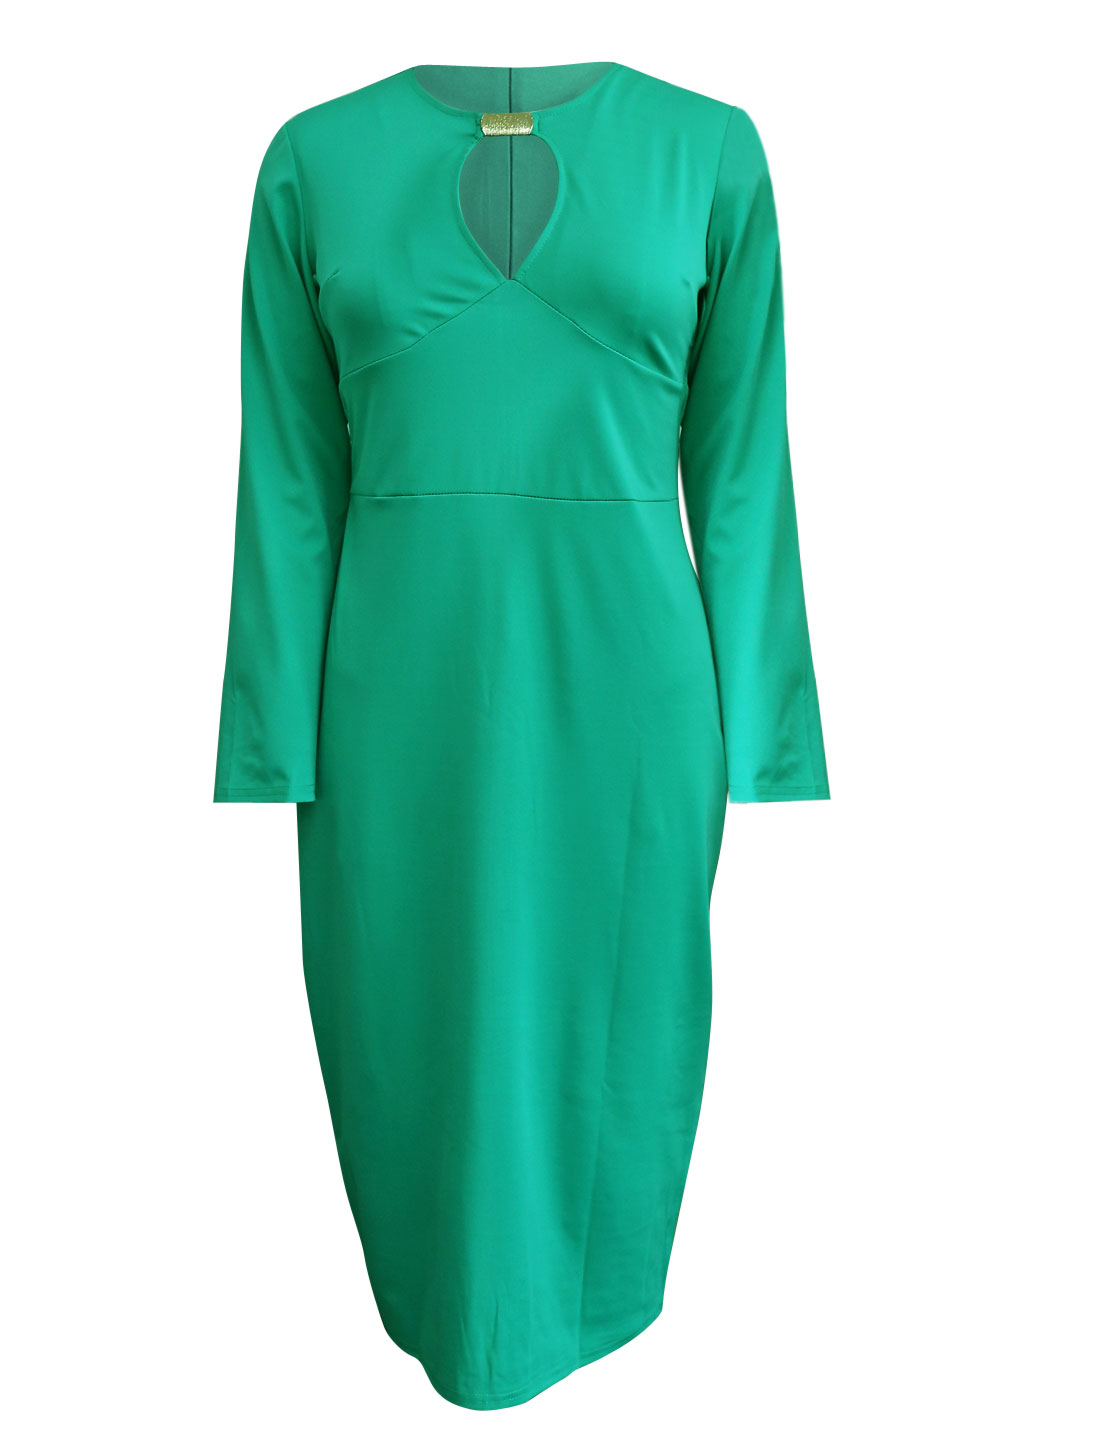 Cut Out Front Overhip Design Sexy Aqua Sheath Dress for Lady XL